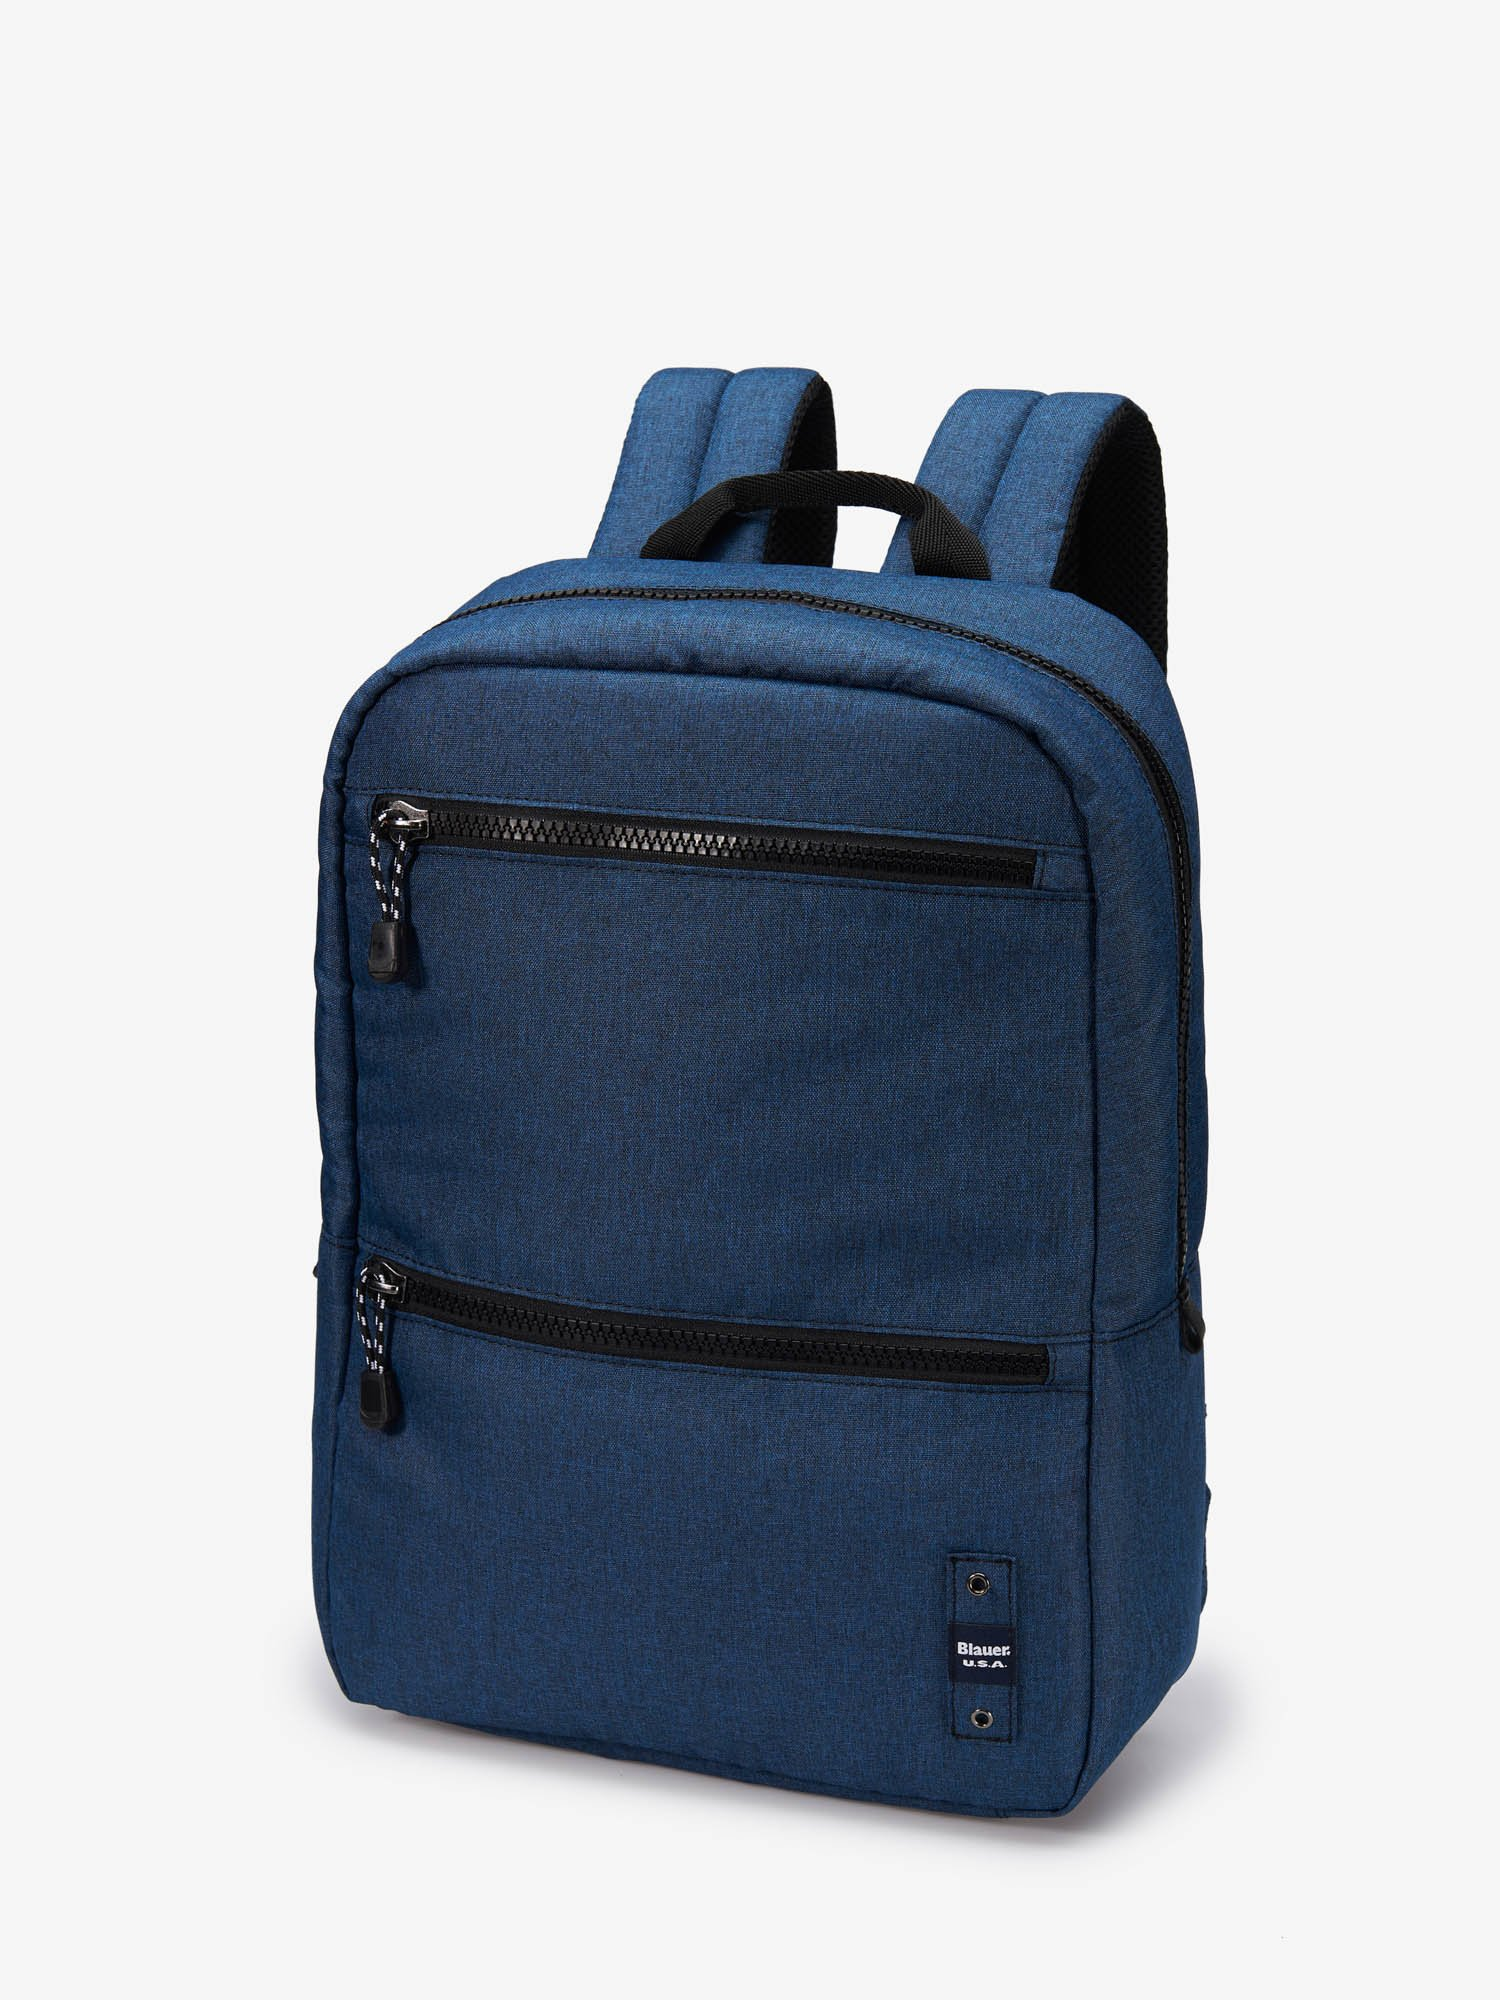 TWO-POCKET BACKPACK - Blauer